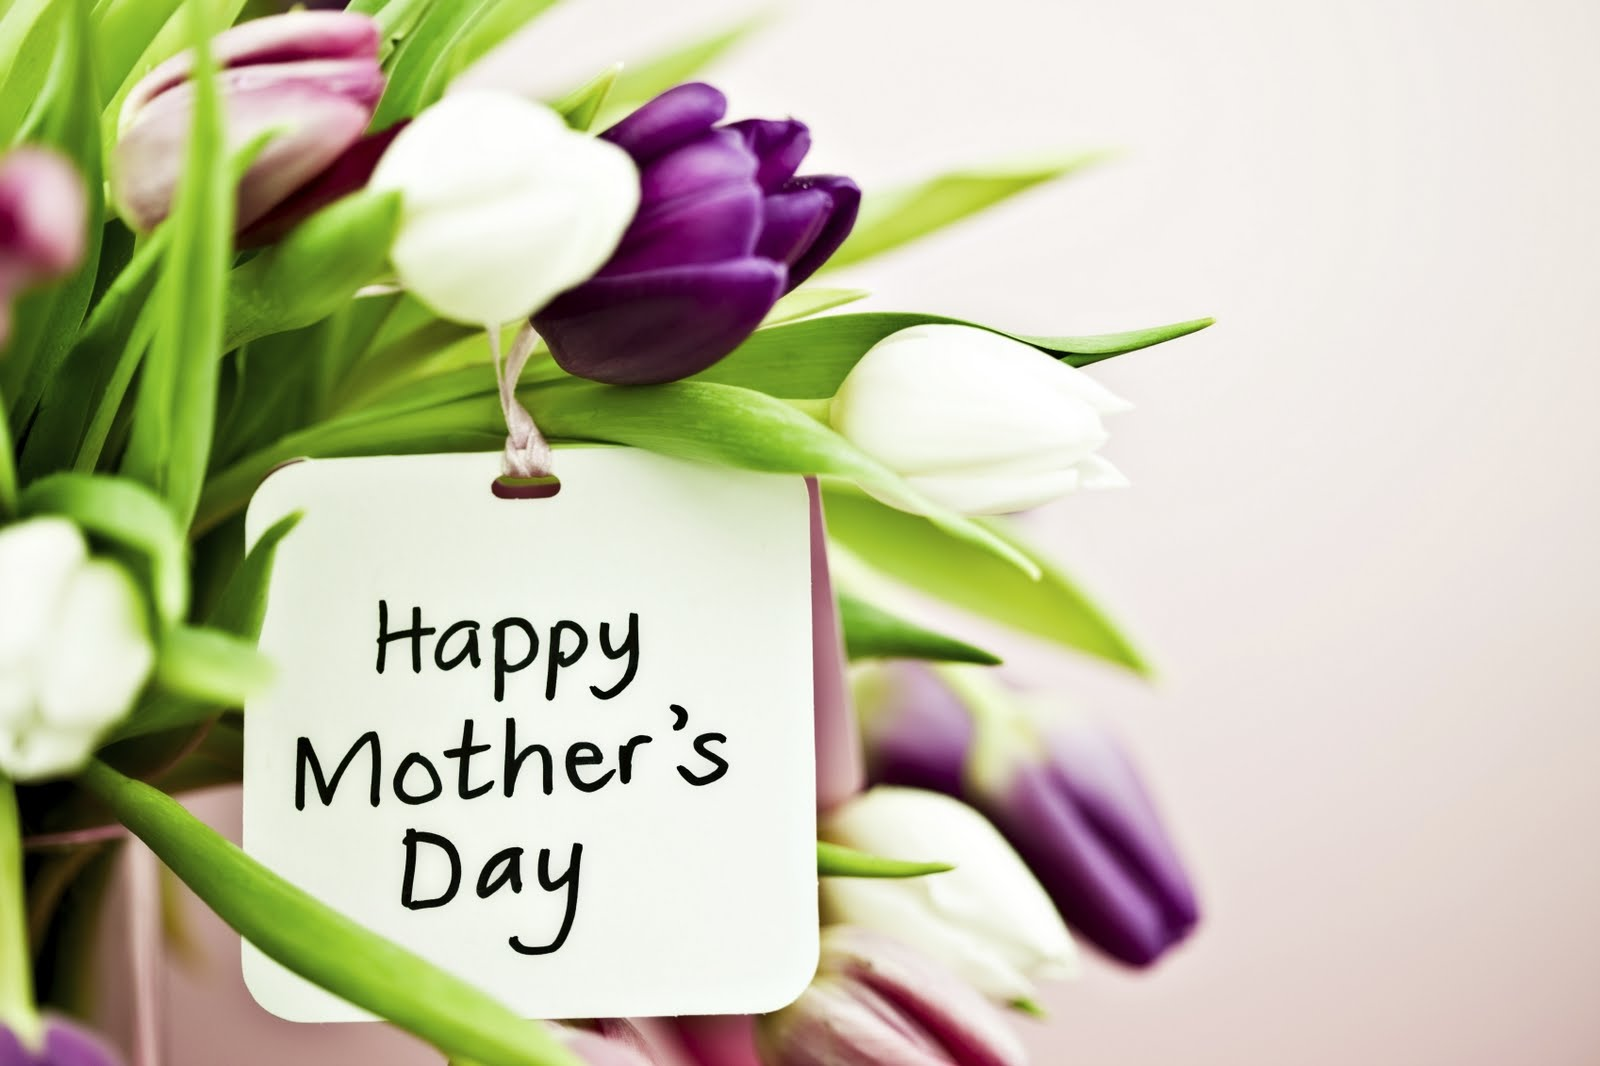 Happy Mothers Day 2012 HD wallpaper 2 Laurrapin Grille 1600x1066